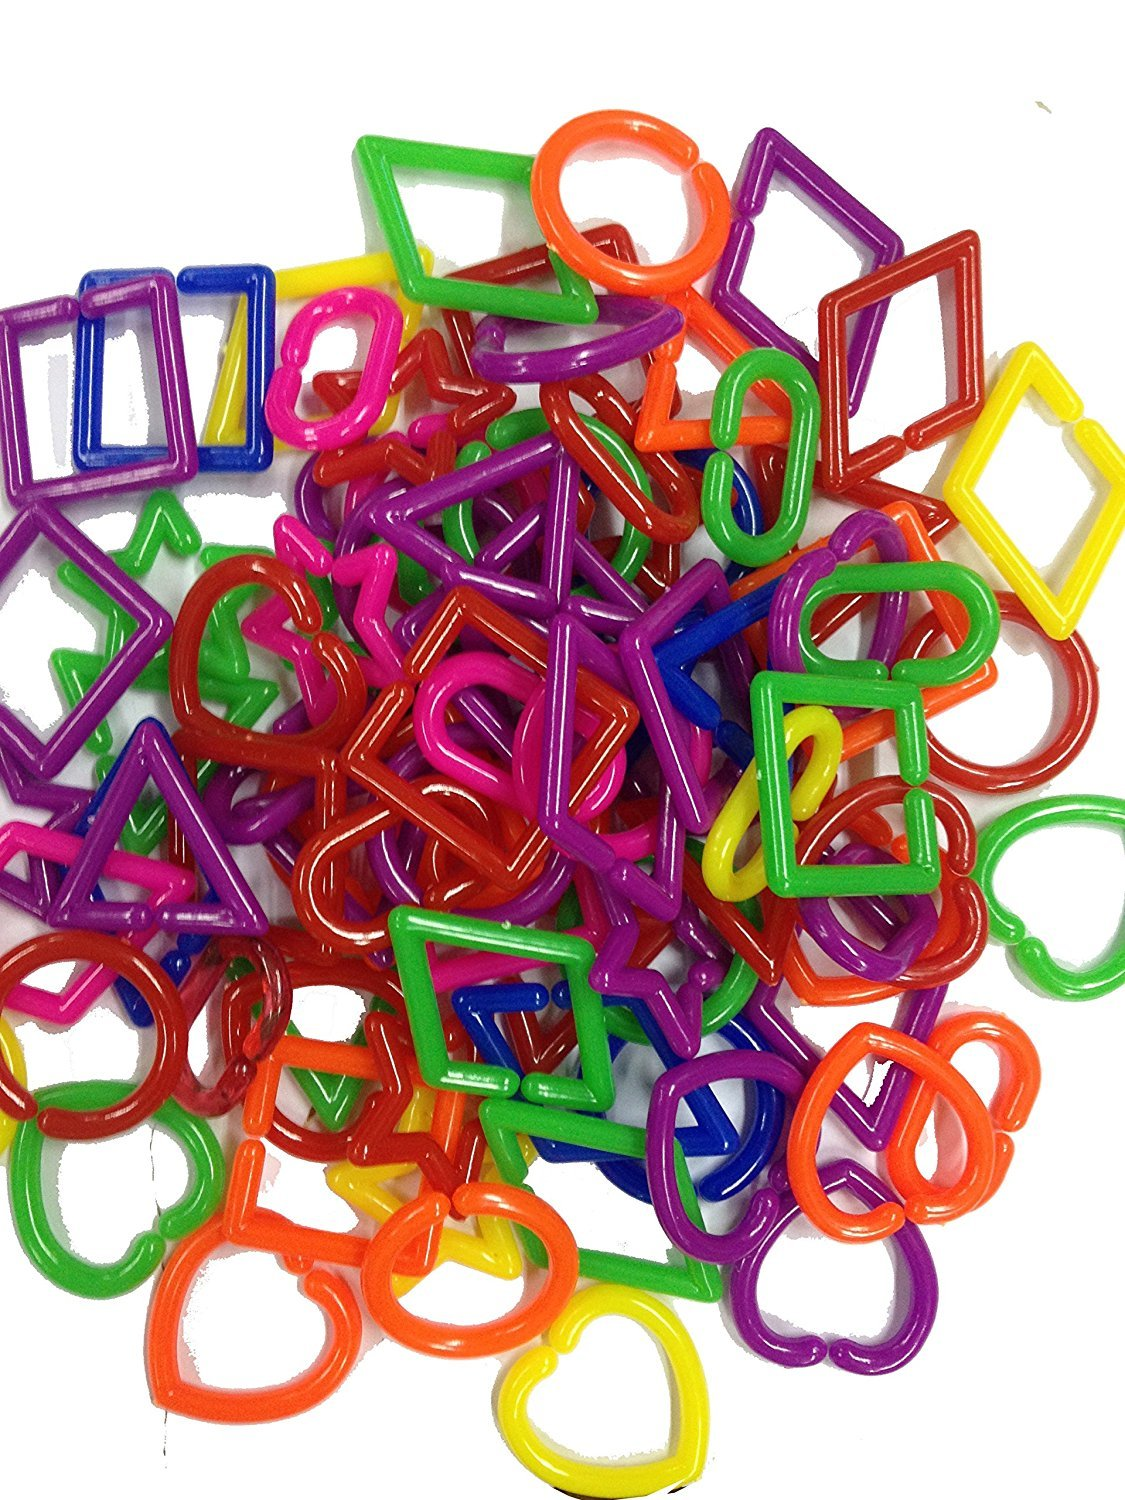 Power of Dream Colorful Geometry Shape Plastic Links, Fun Kids Kindergarten Children Education Toy,Counting Learning,Color Matching, 100 pcs.